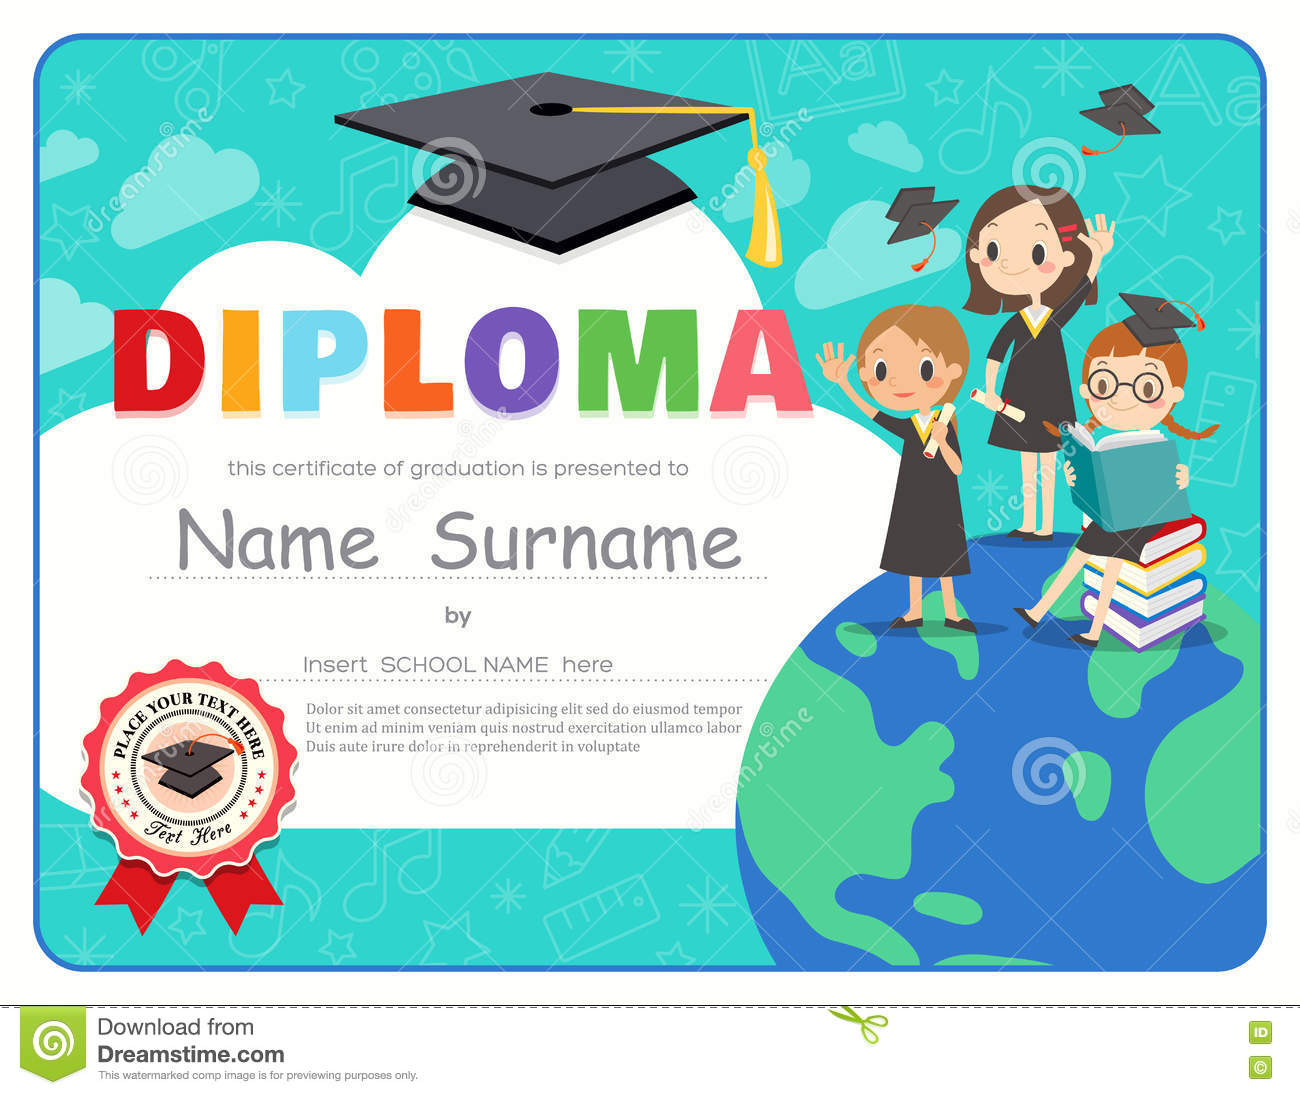 graduation certificate template - primary school kids graduation diploma certificate design